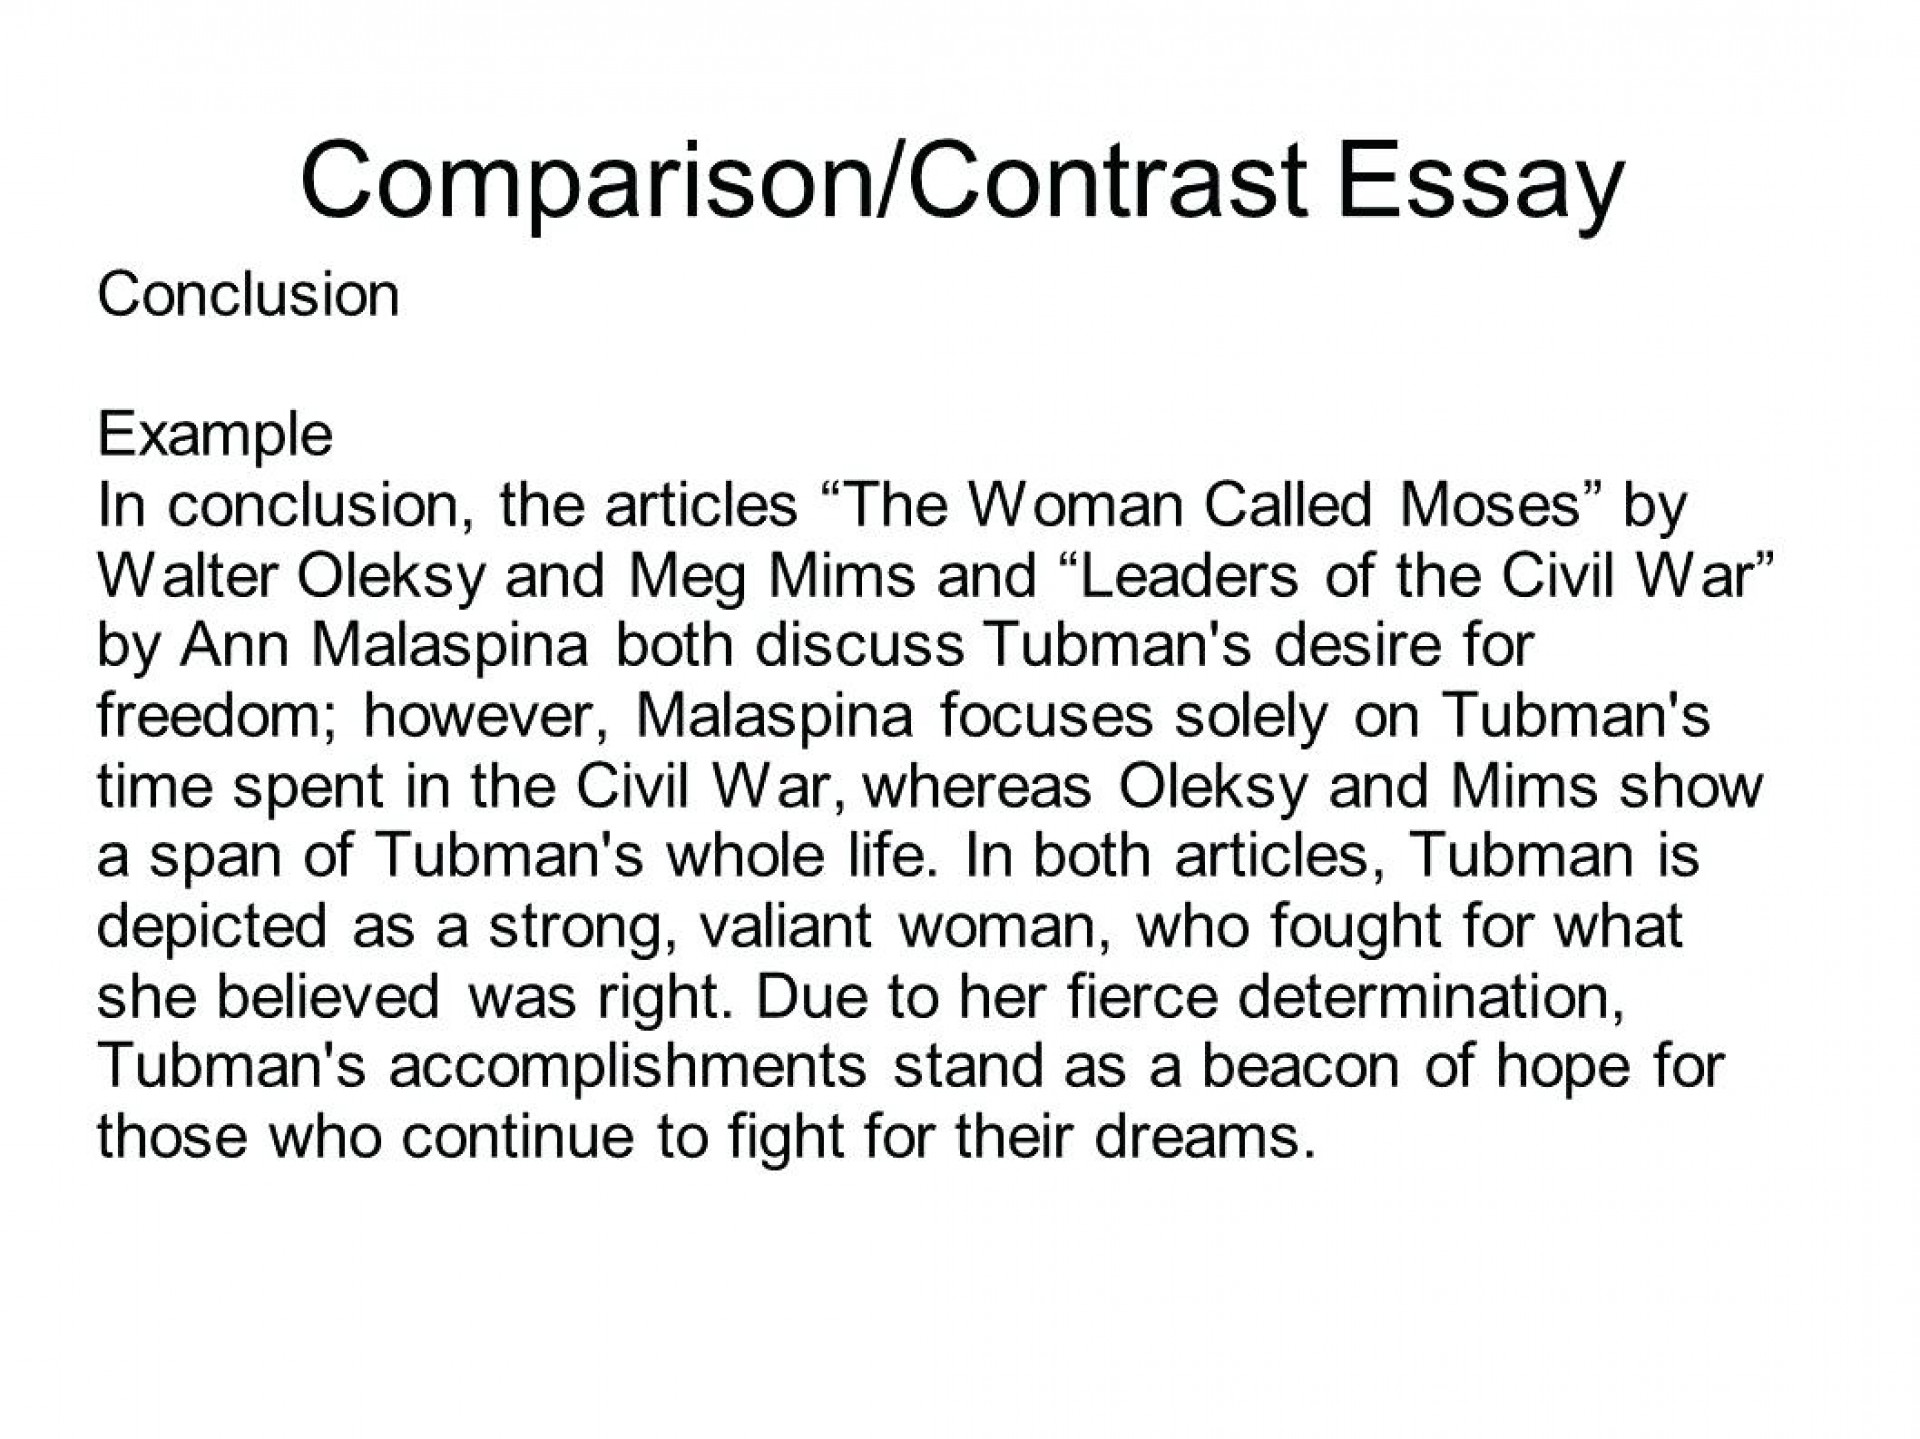 019 Essay Example Comparison Contrast Co Swritg Compare Rare And Block Method Sample High School Examples Middle 1920